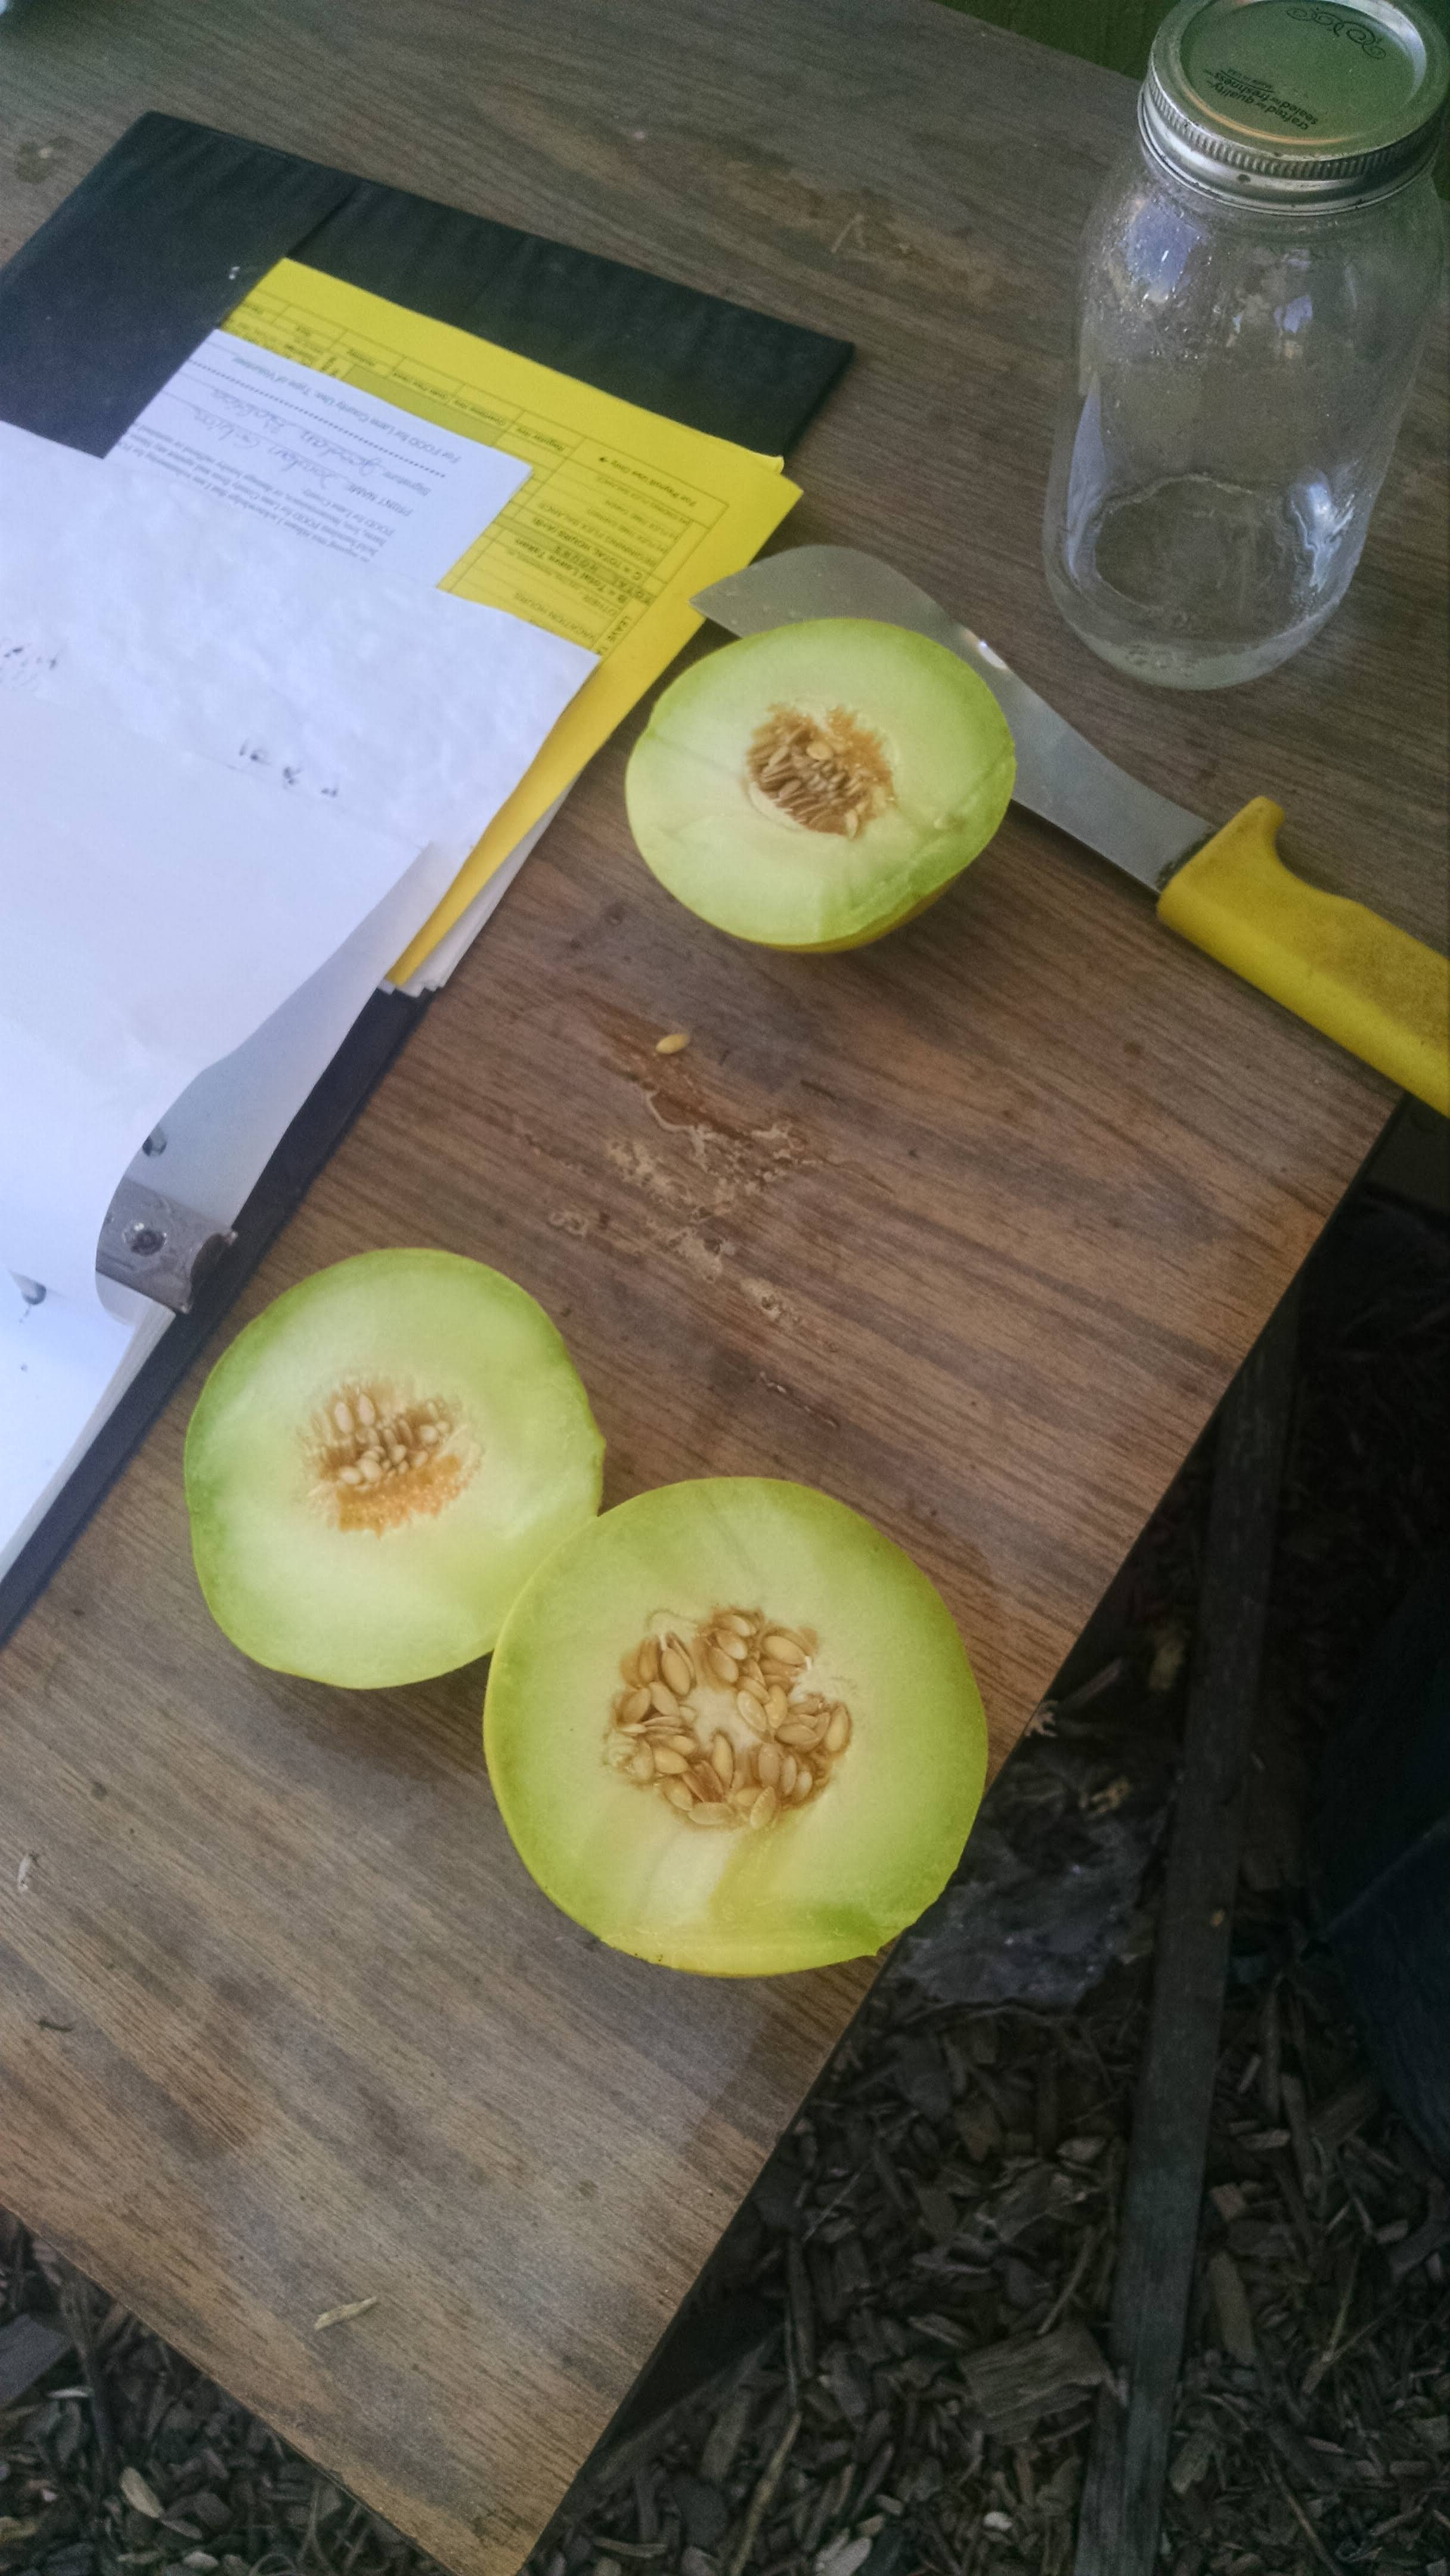 The first melons, so sweet and juicy